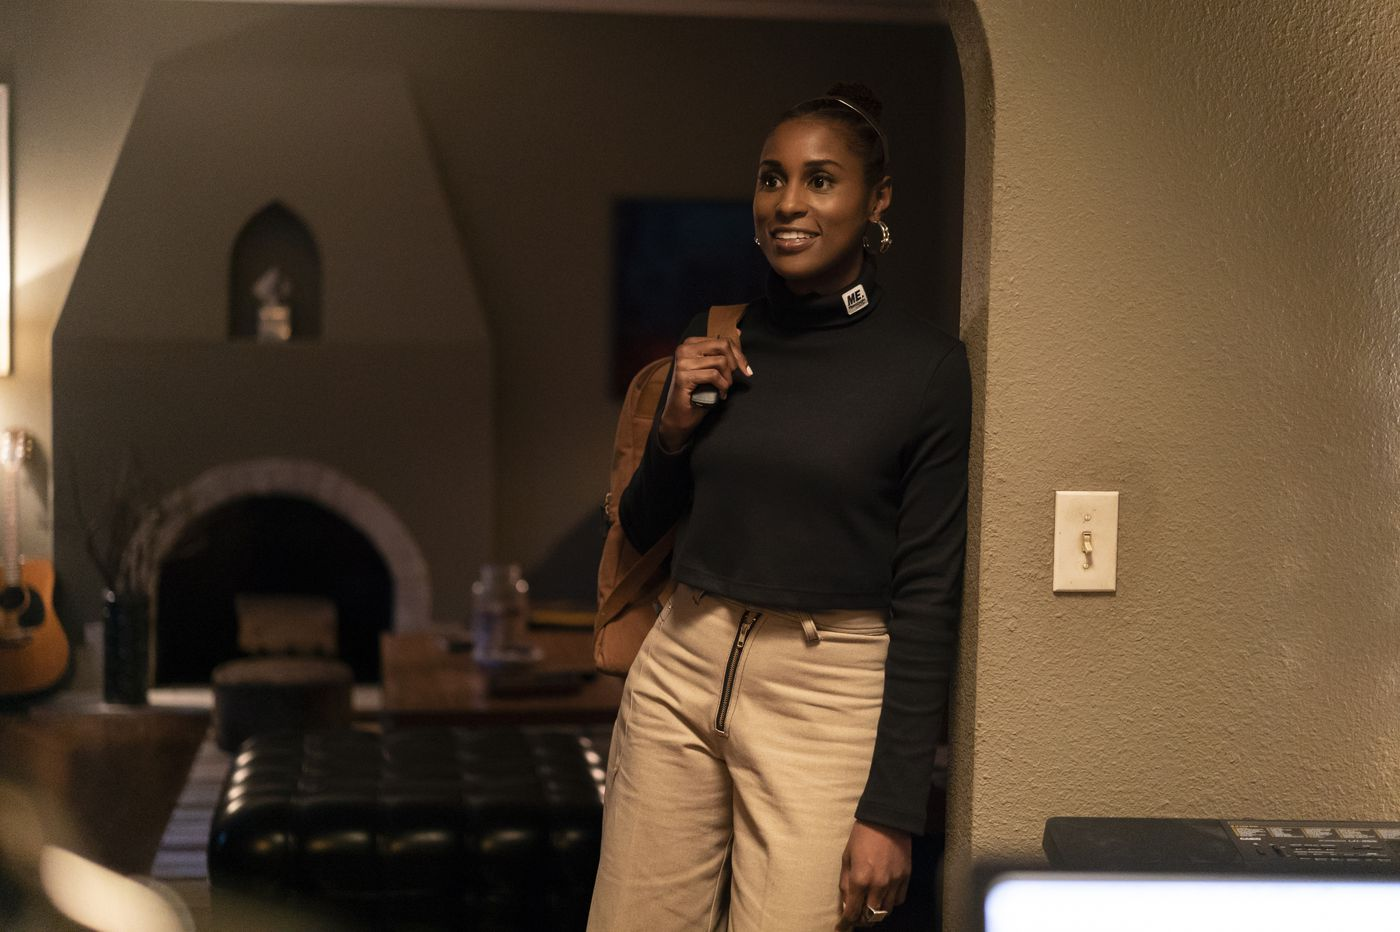 TV picks: 'Insecure,' 'Disenchantment,' 'Born This Way,' and more